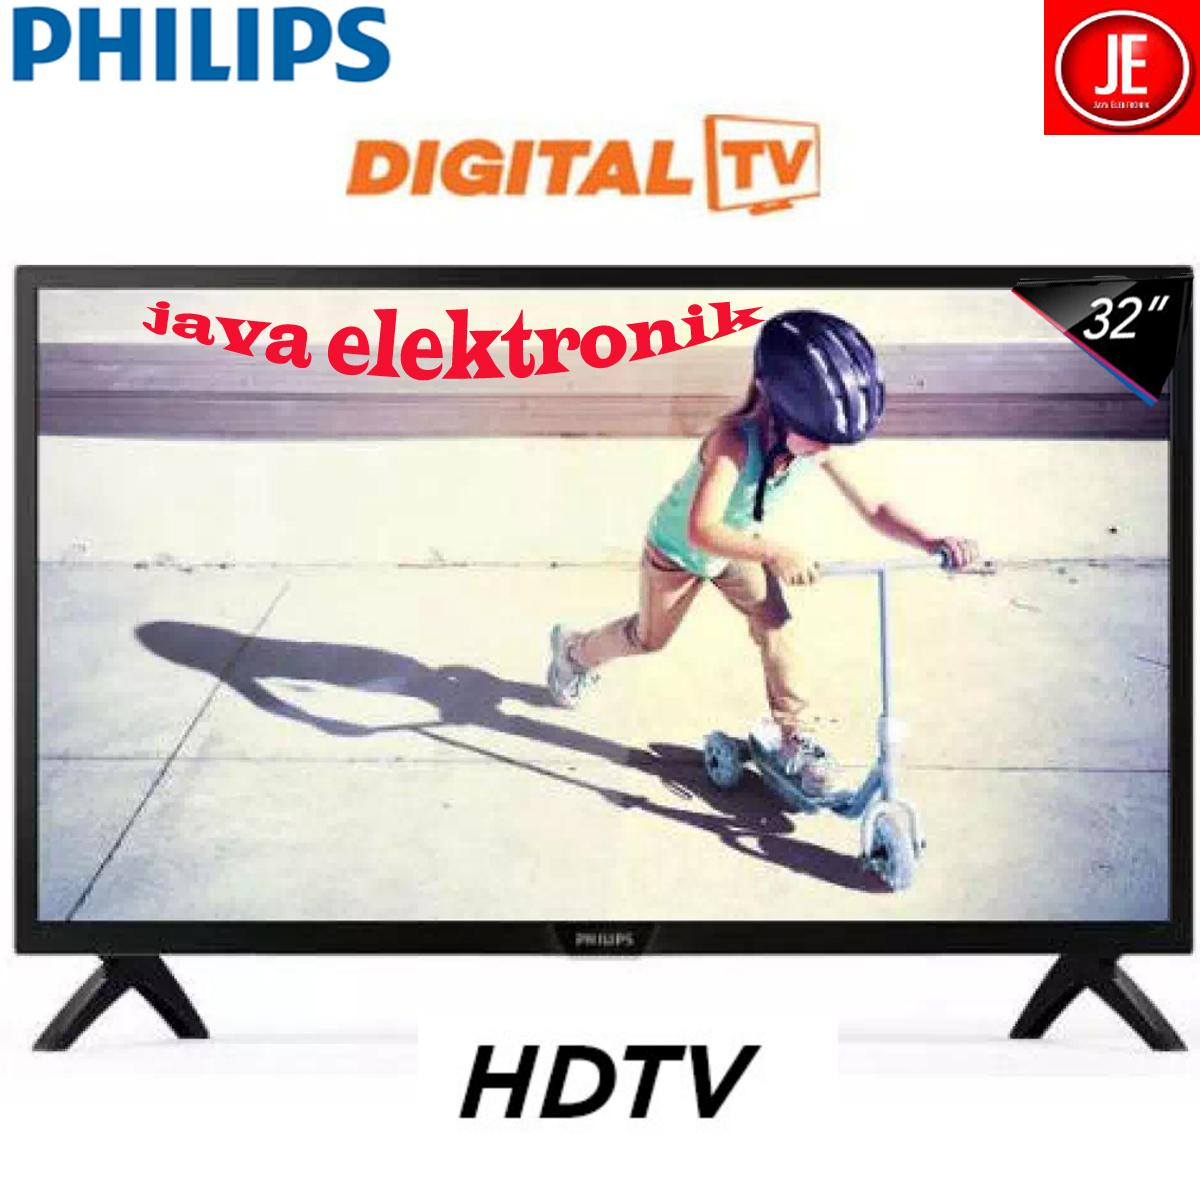 PHILIPS LED TV 32 Inch PHT Digital TV - 32PHT4002 GARANSI RESMI